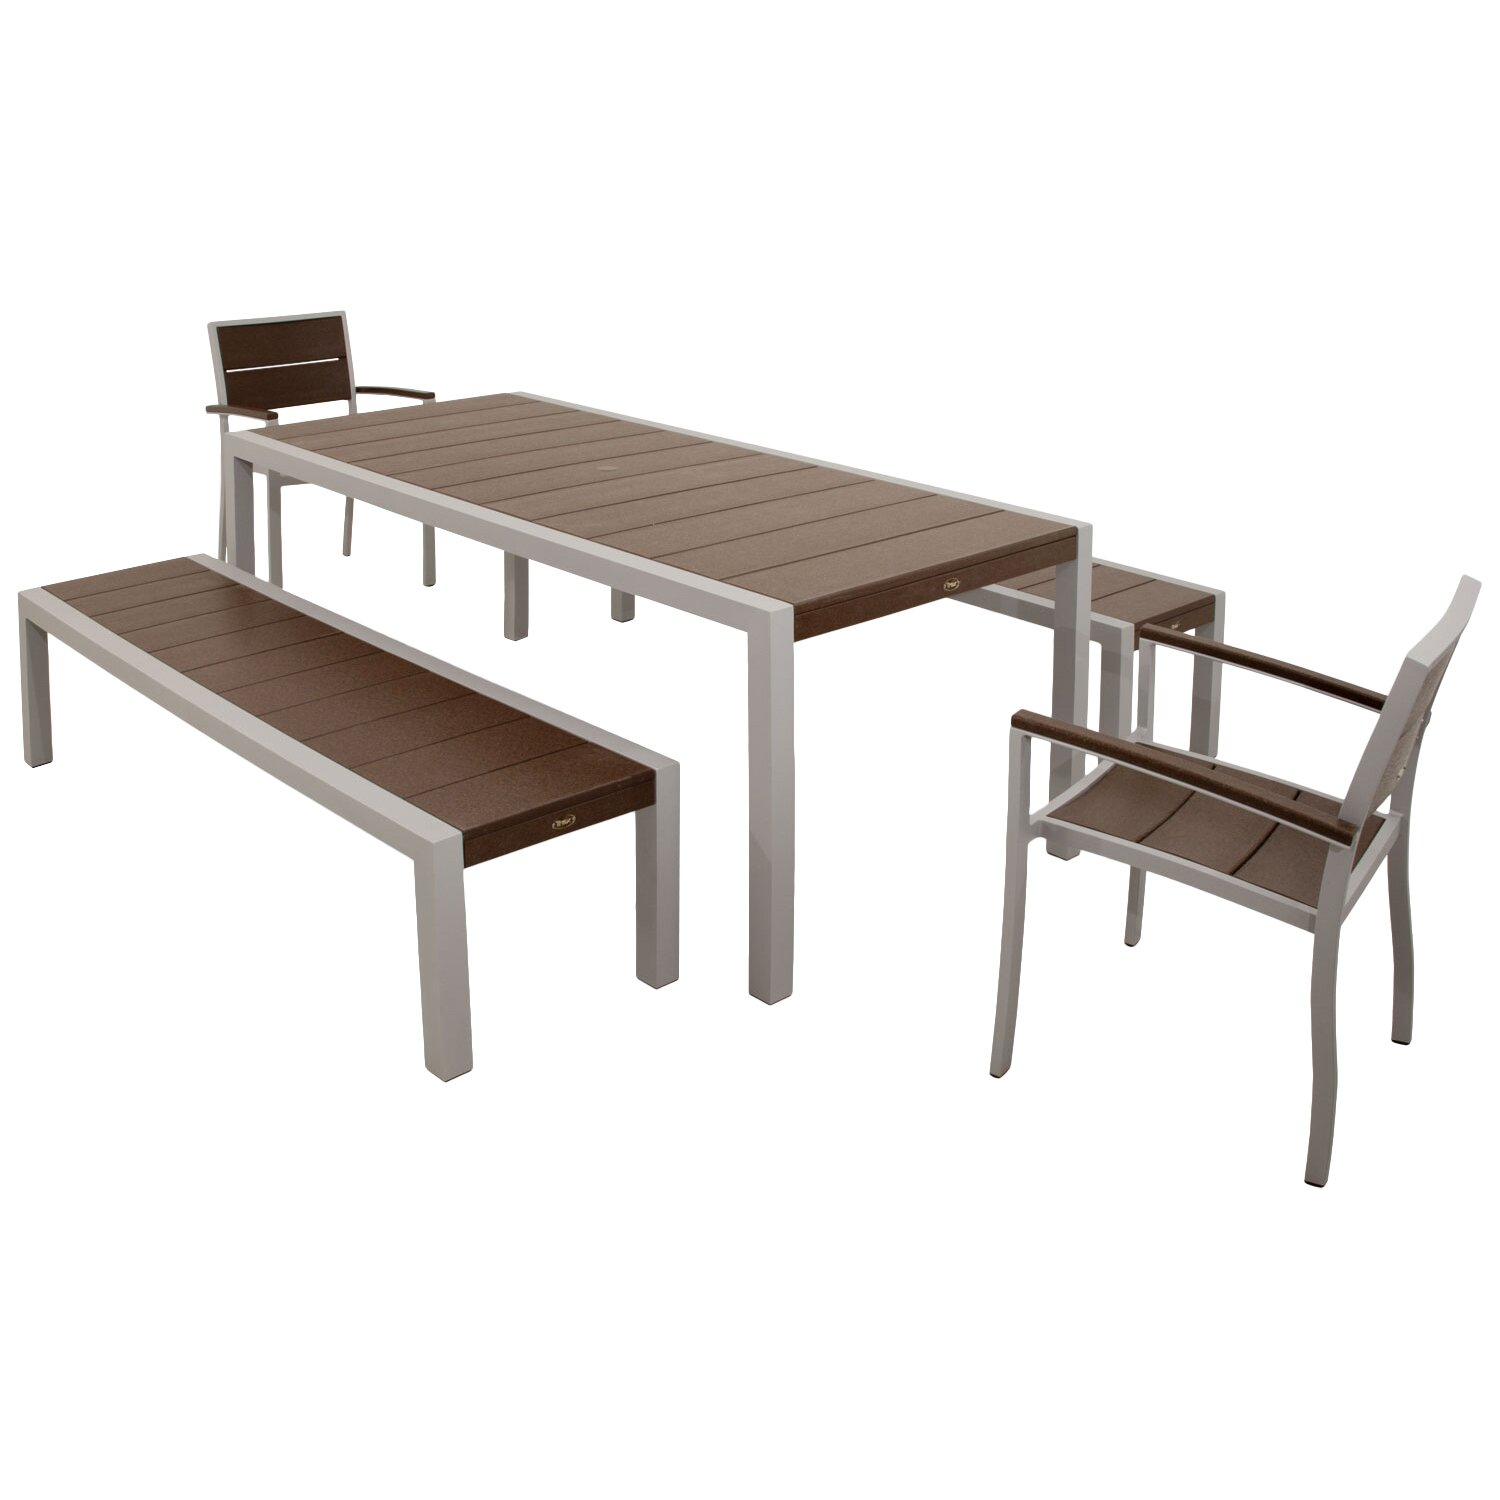 Very Impressive portraiture of Trex Surf City 5 Piece Bench Dining Set & Reviews Wayfair with #422C1F color and 1500x1500 pixels